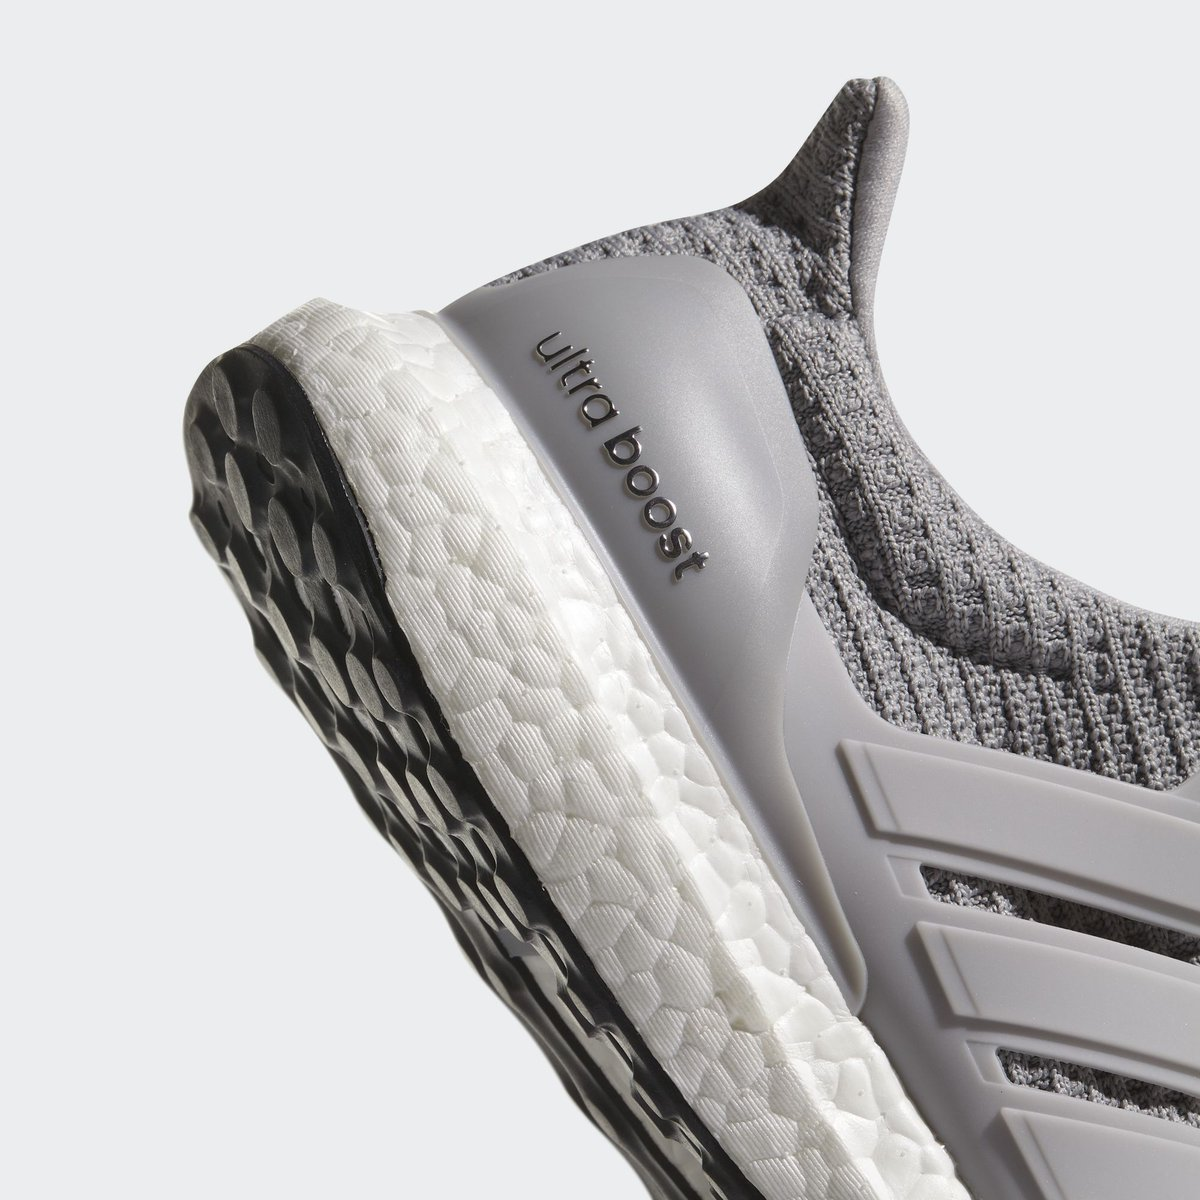 b0e75c225 Ultra boost 4.0 Grey Two Grey Two Core Black BB6167  180  http   www.adidas .com us BB6167.htmlpic.twitter.com VE5CtoMHeA. 10 02 AM - 24 Oct 2017